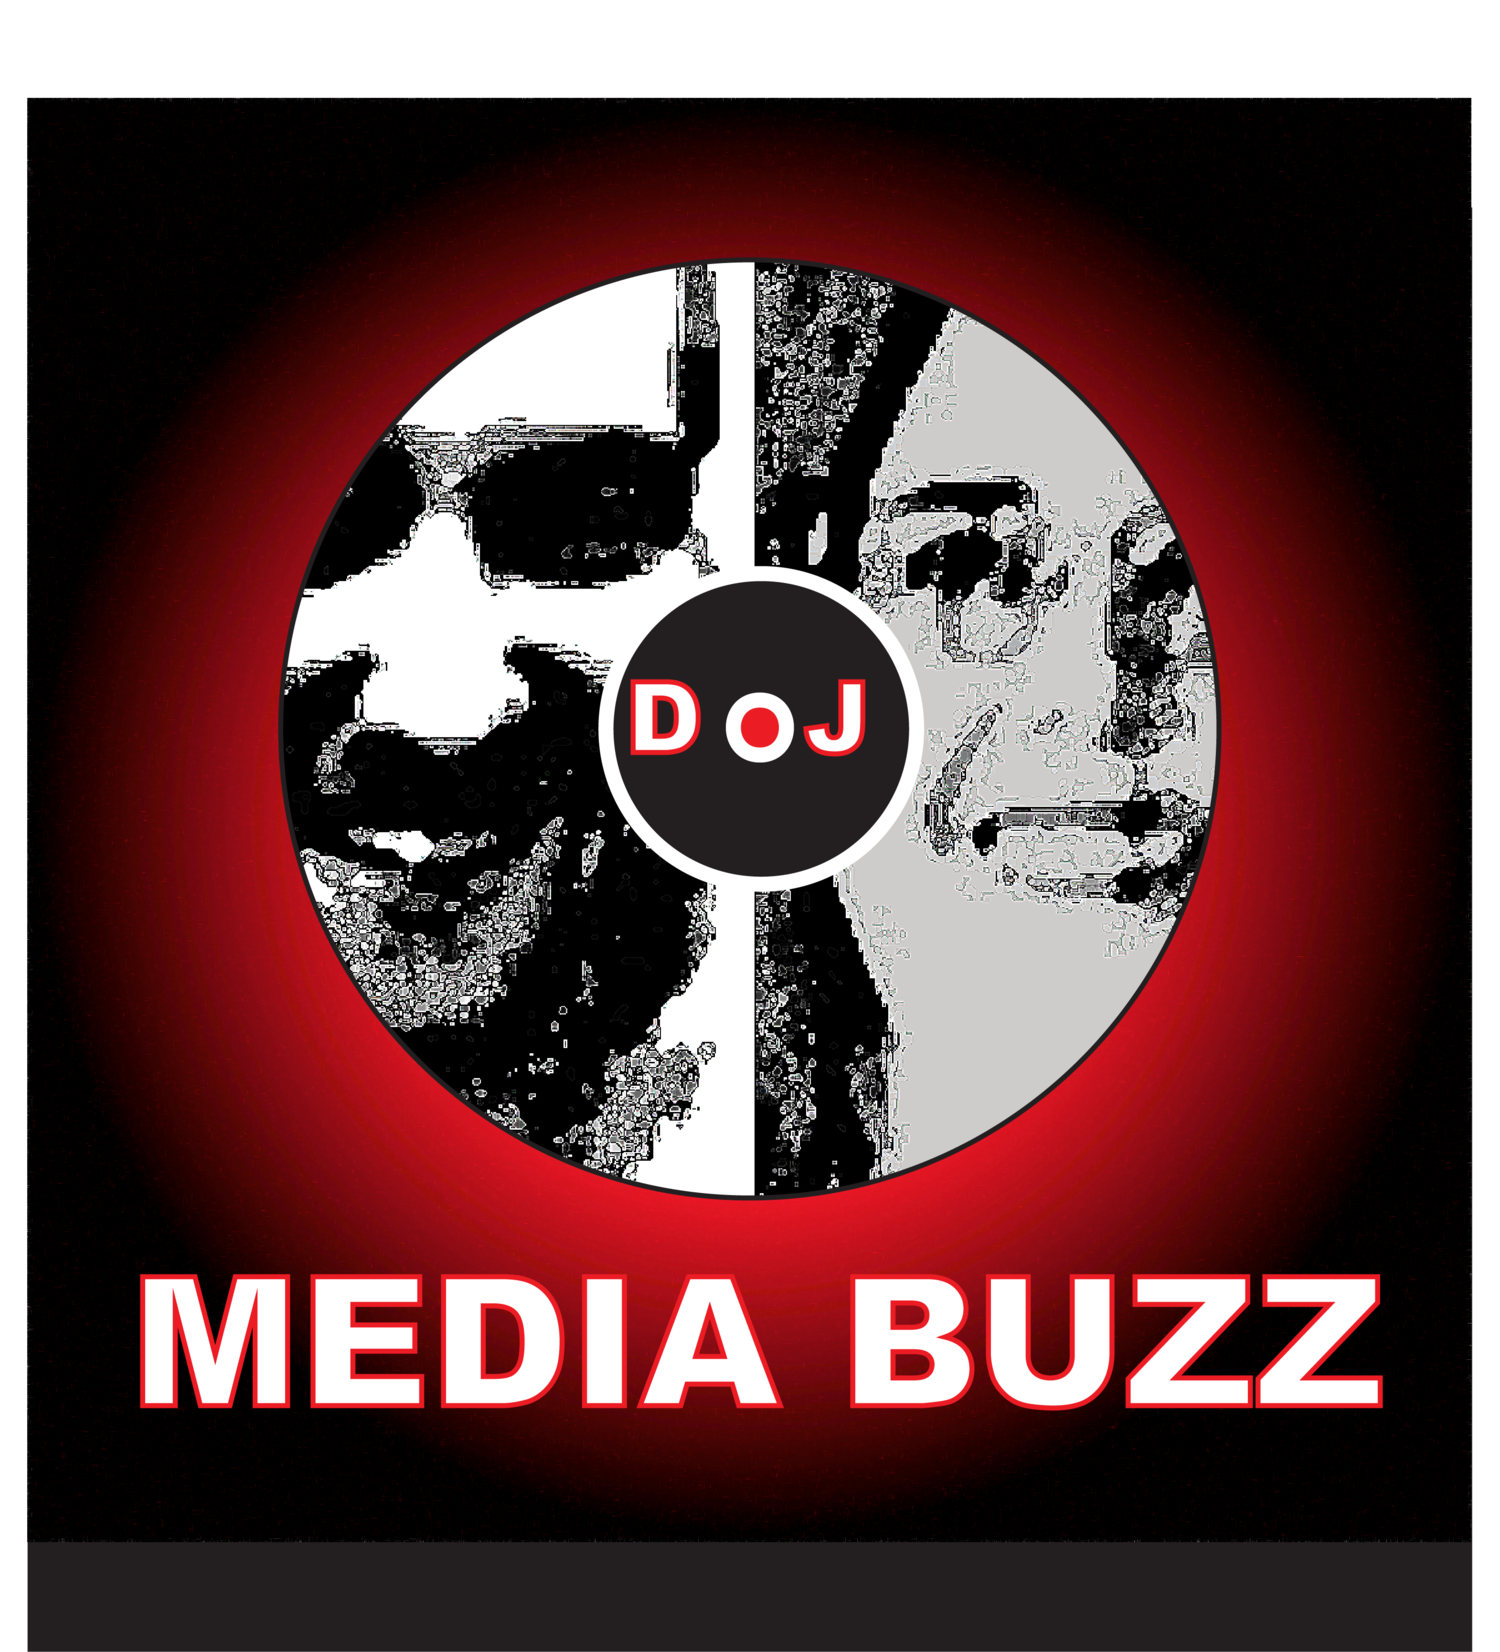 DJ MEDIA BUZZ - Dacespace.com